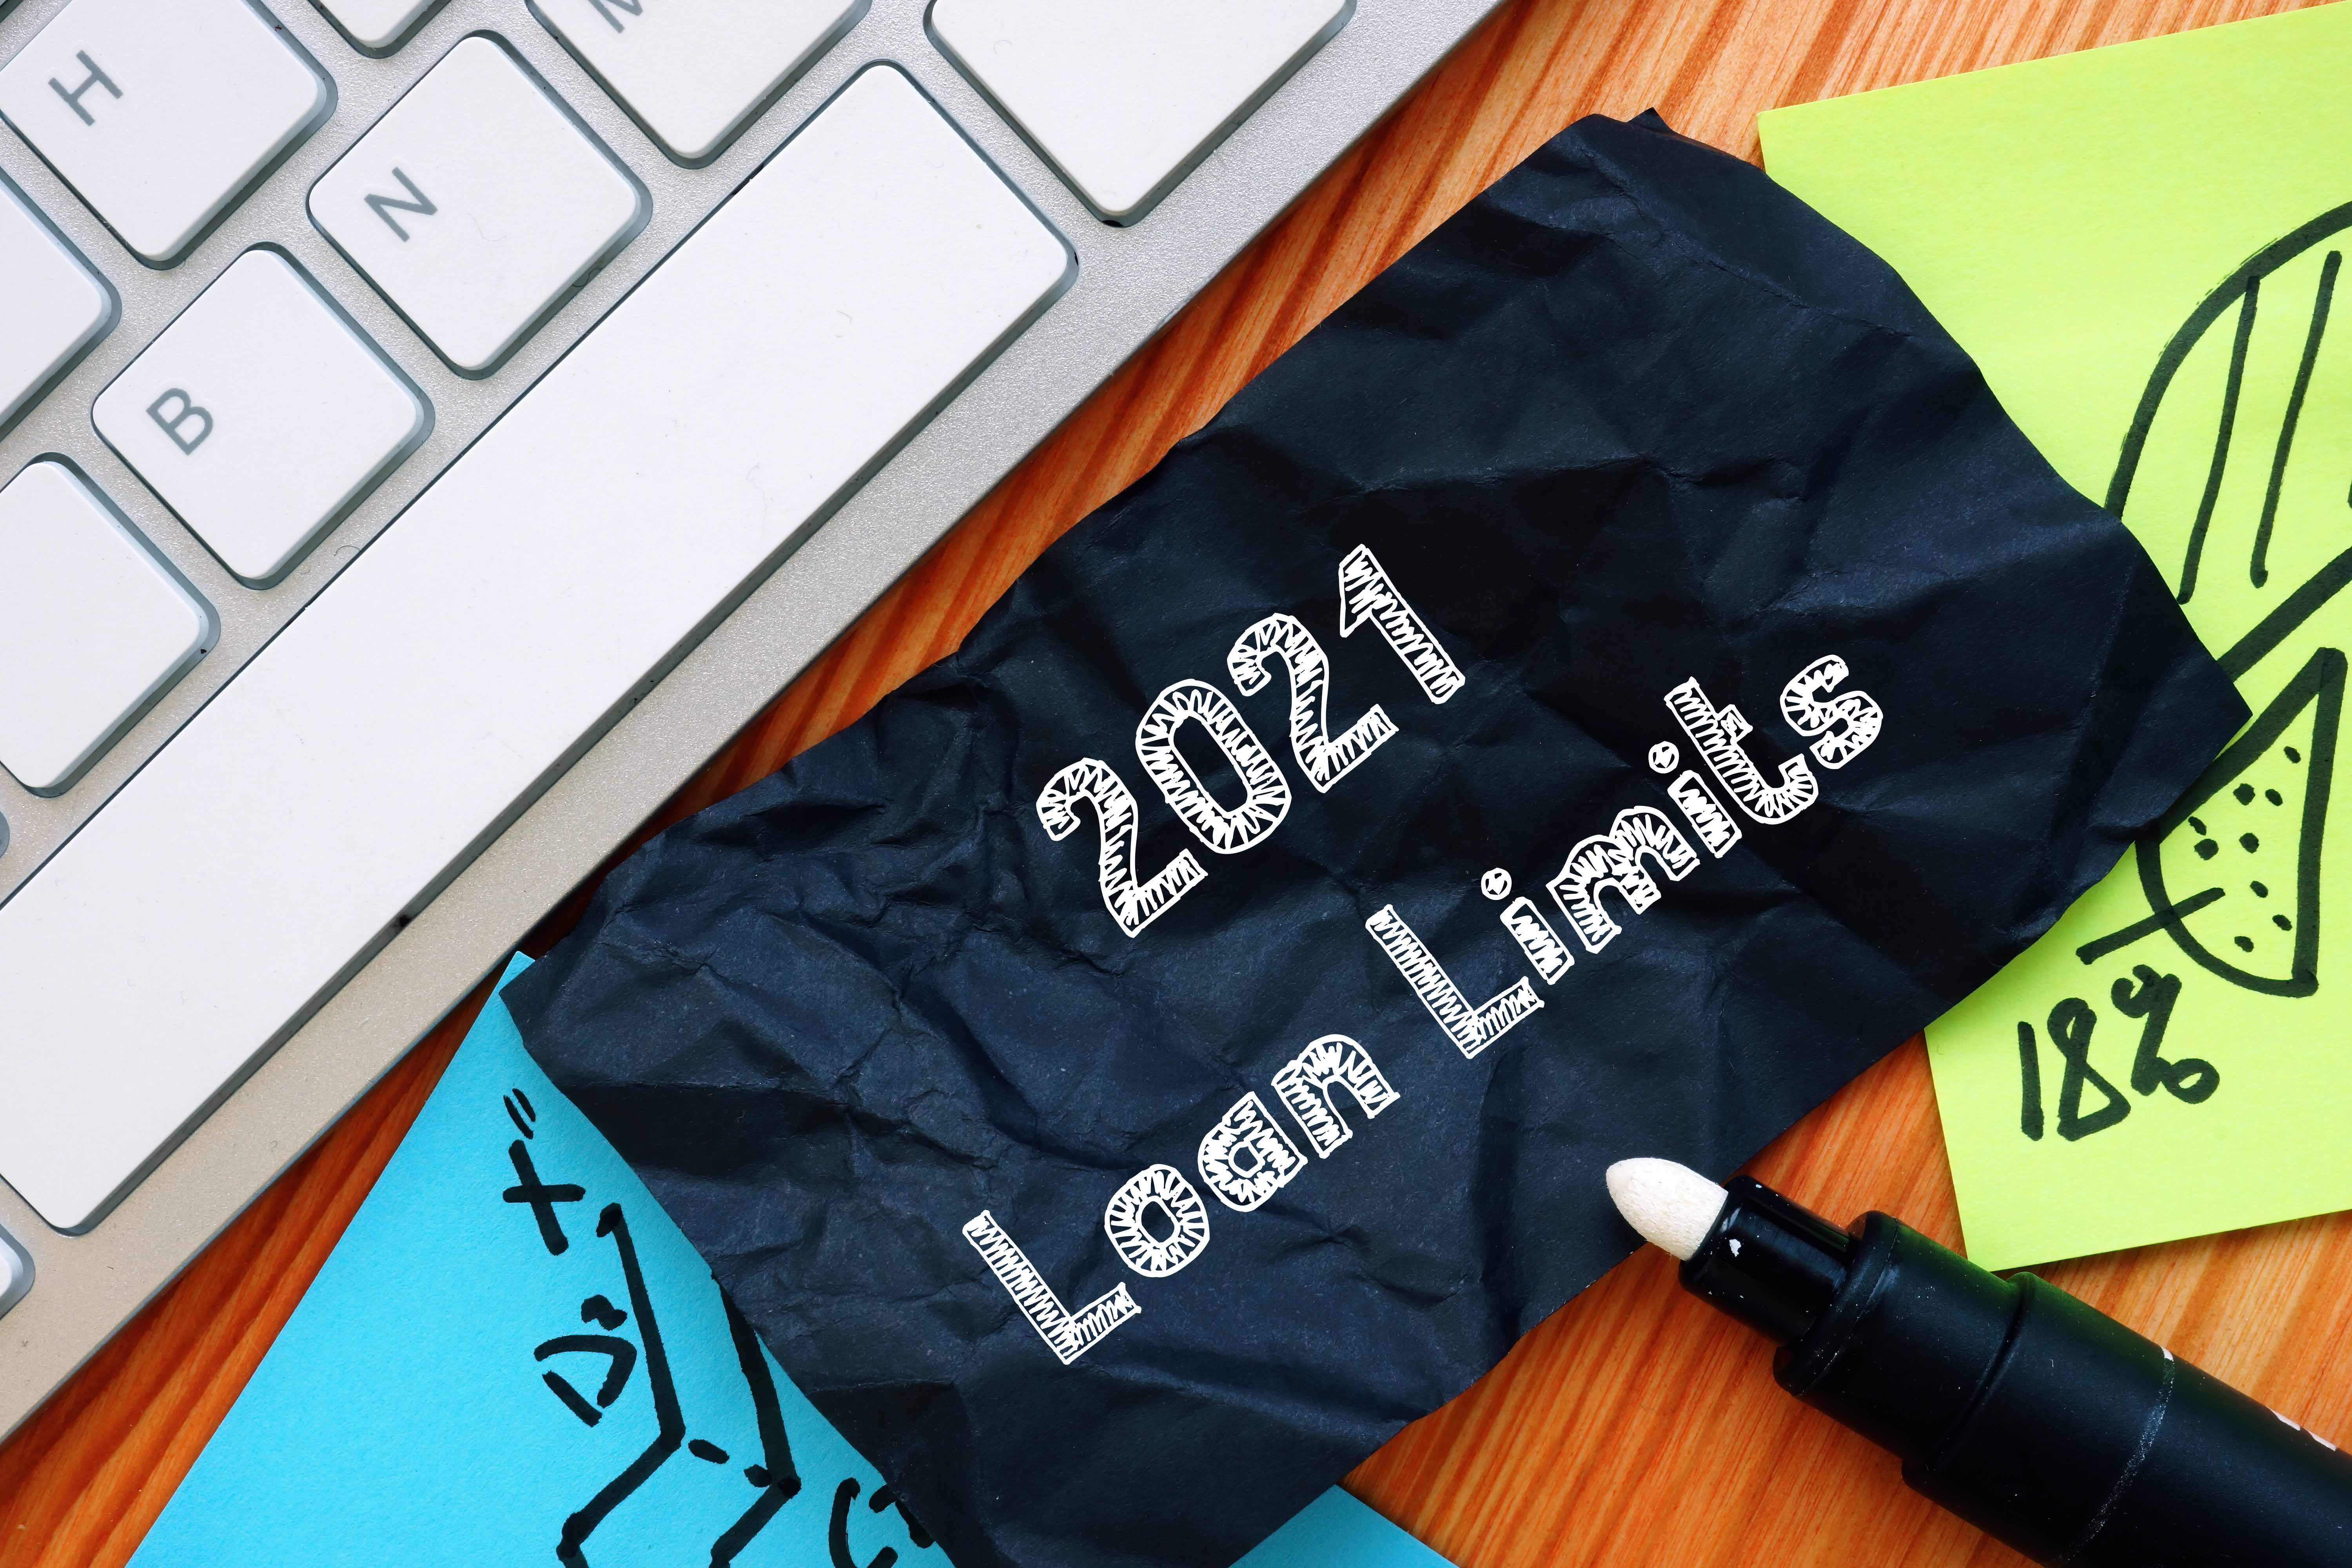 FHFA Conforming Loan Limits Rise 7% for 2021, Reflecting Hot Housing Market